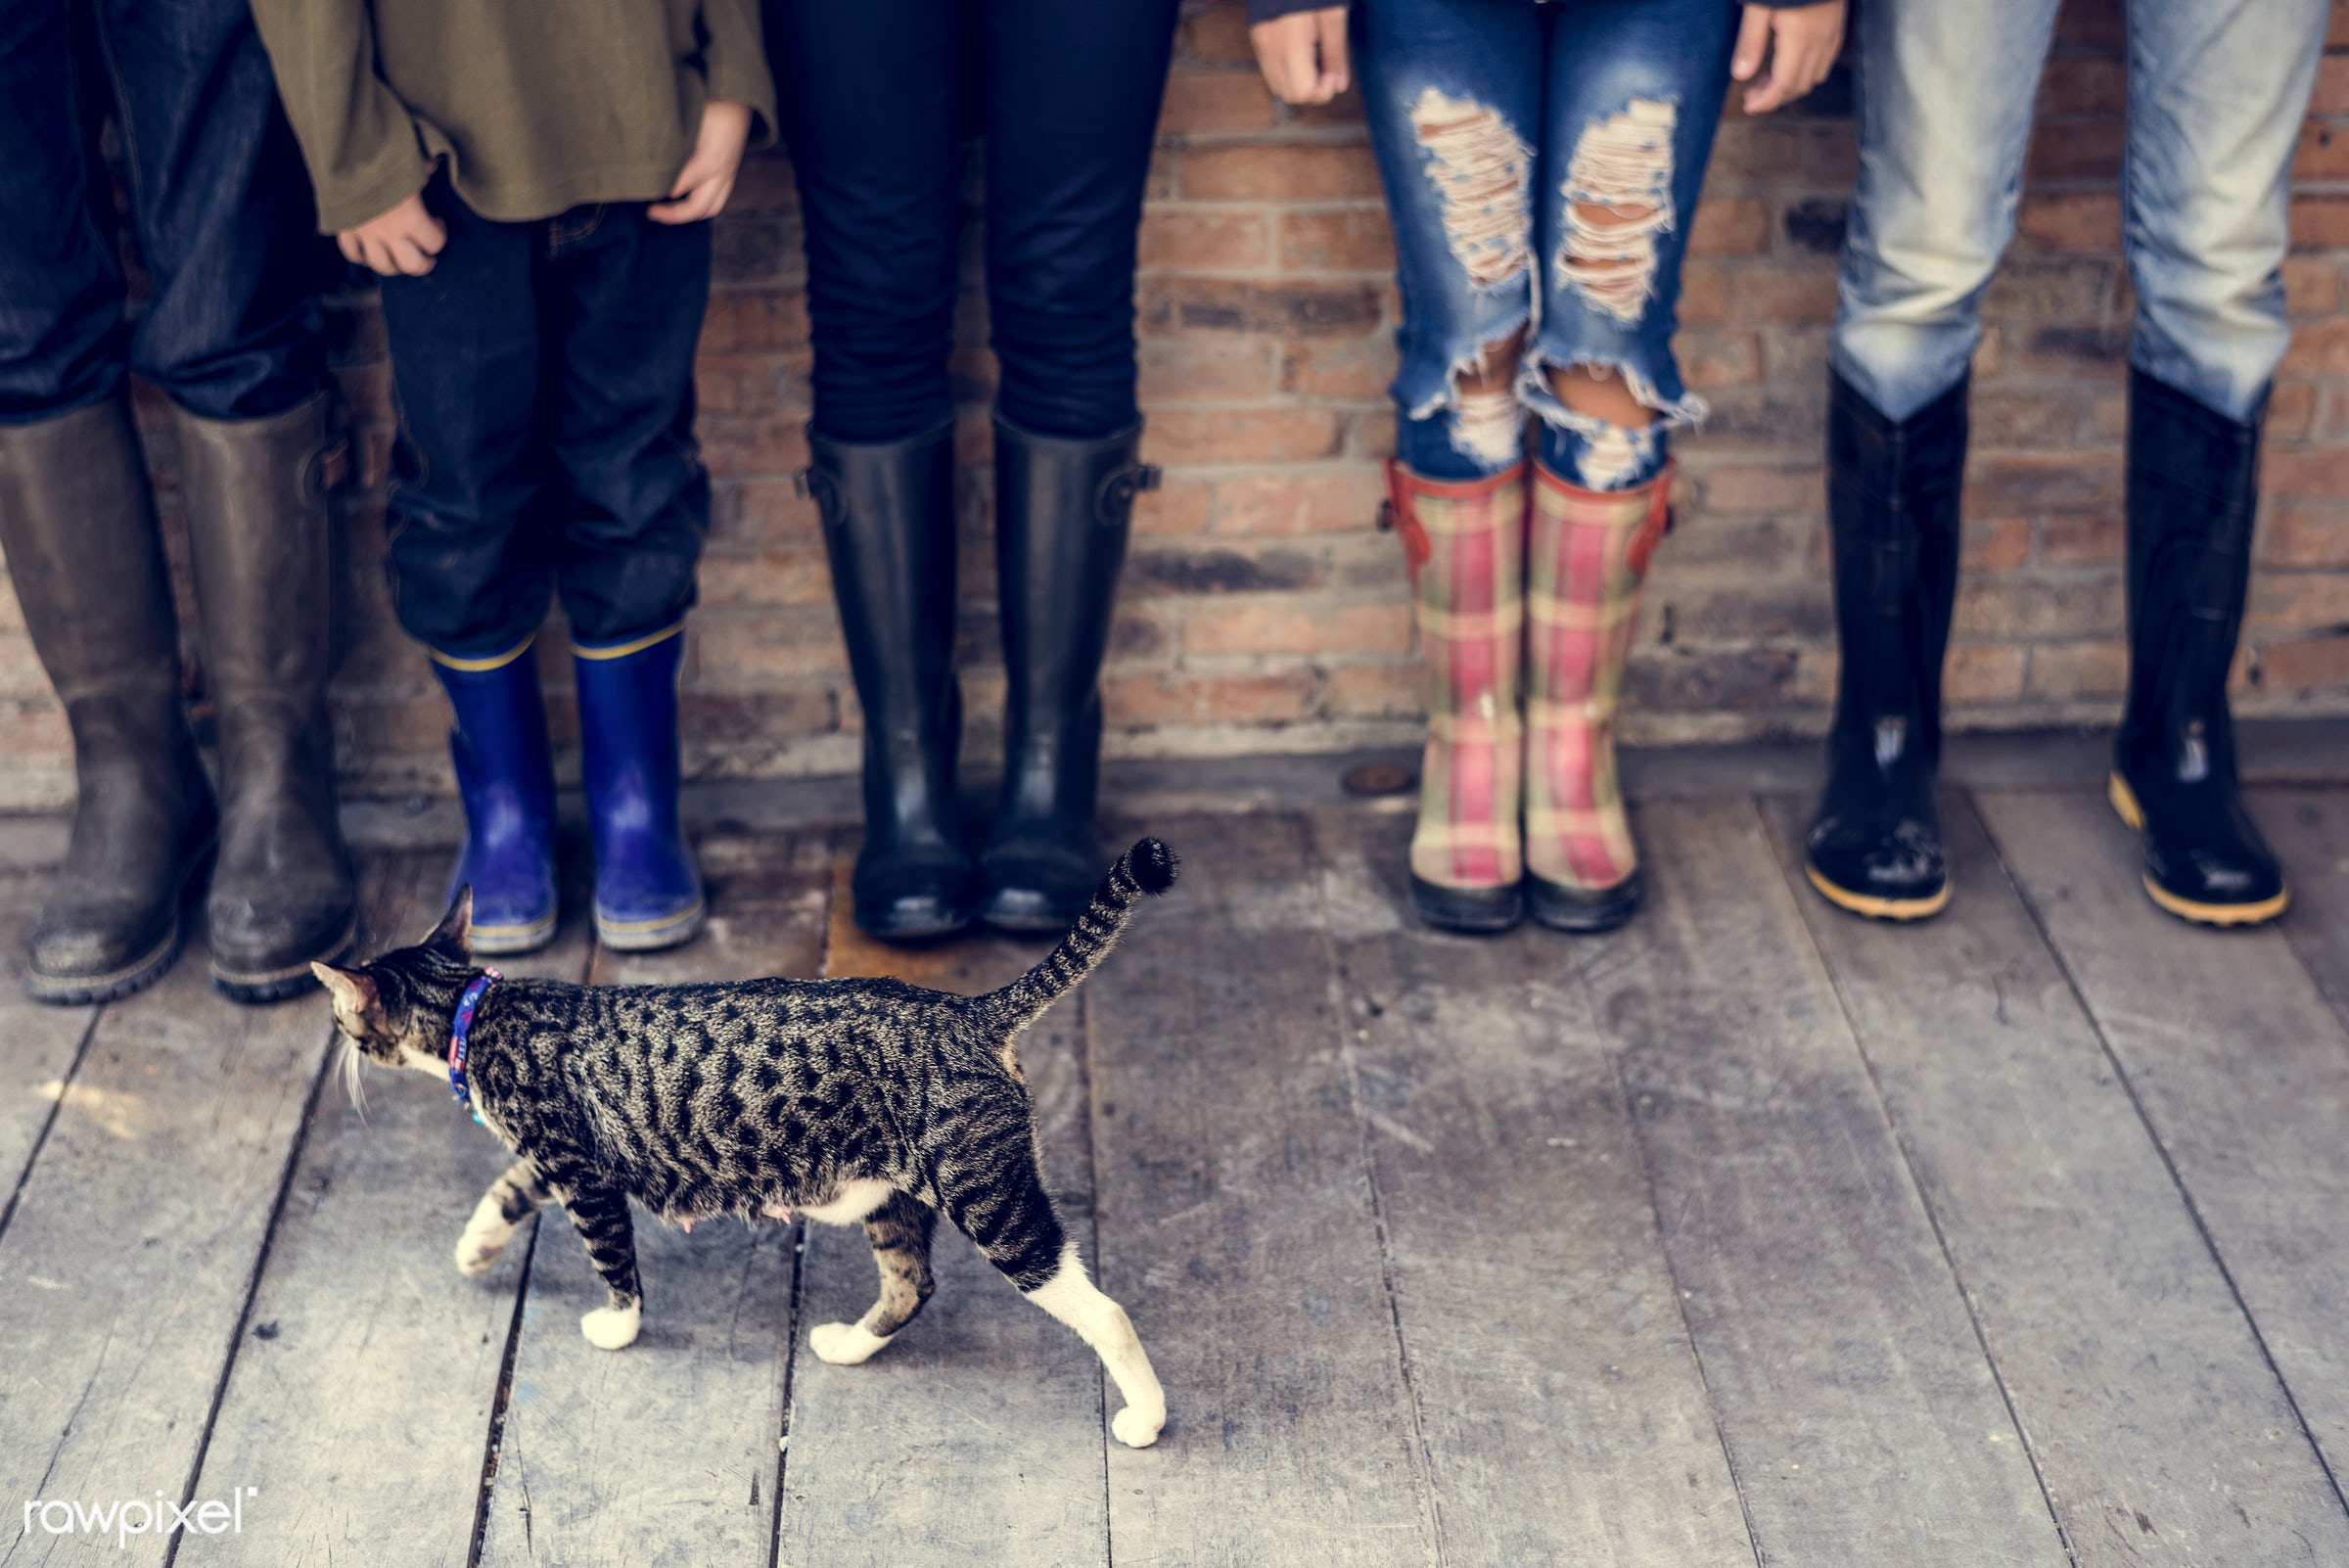 copy space, cat, brick wall, brick, wooden floor, children, plank, people, human leg, family, men, boots, blank, in a row,...